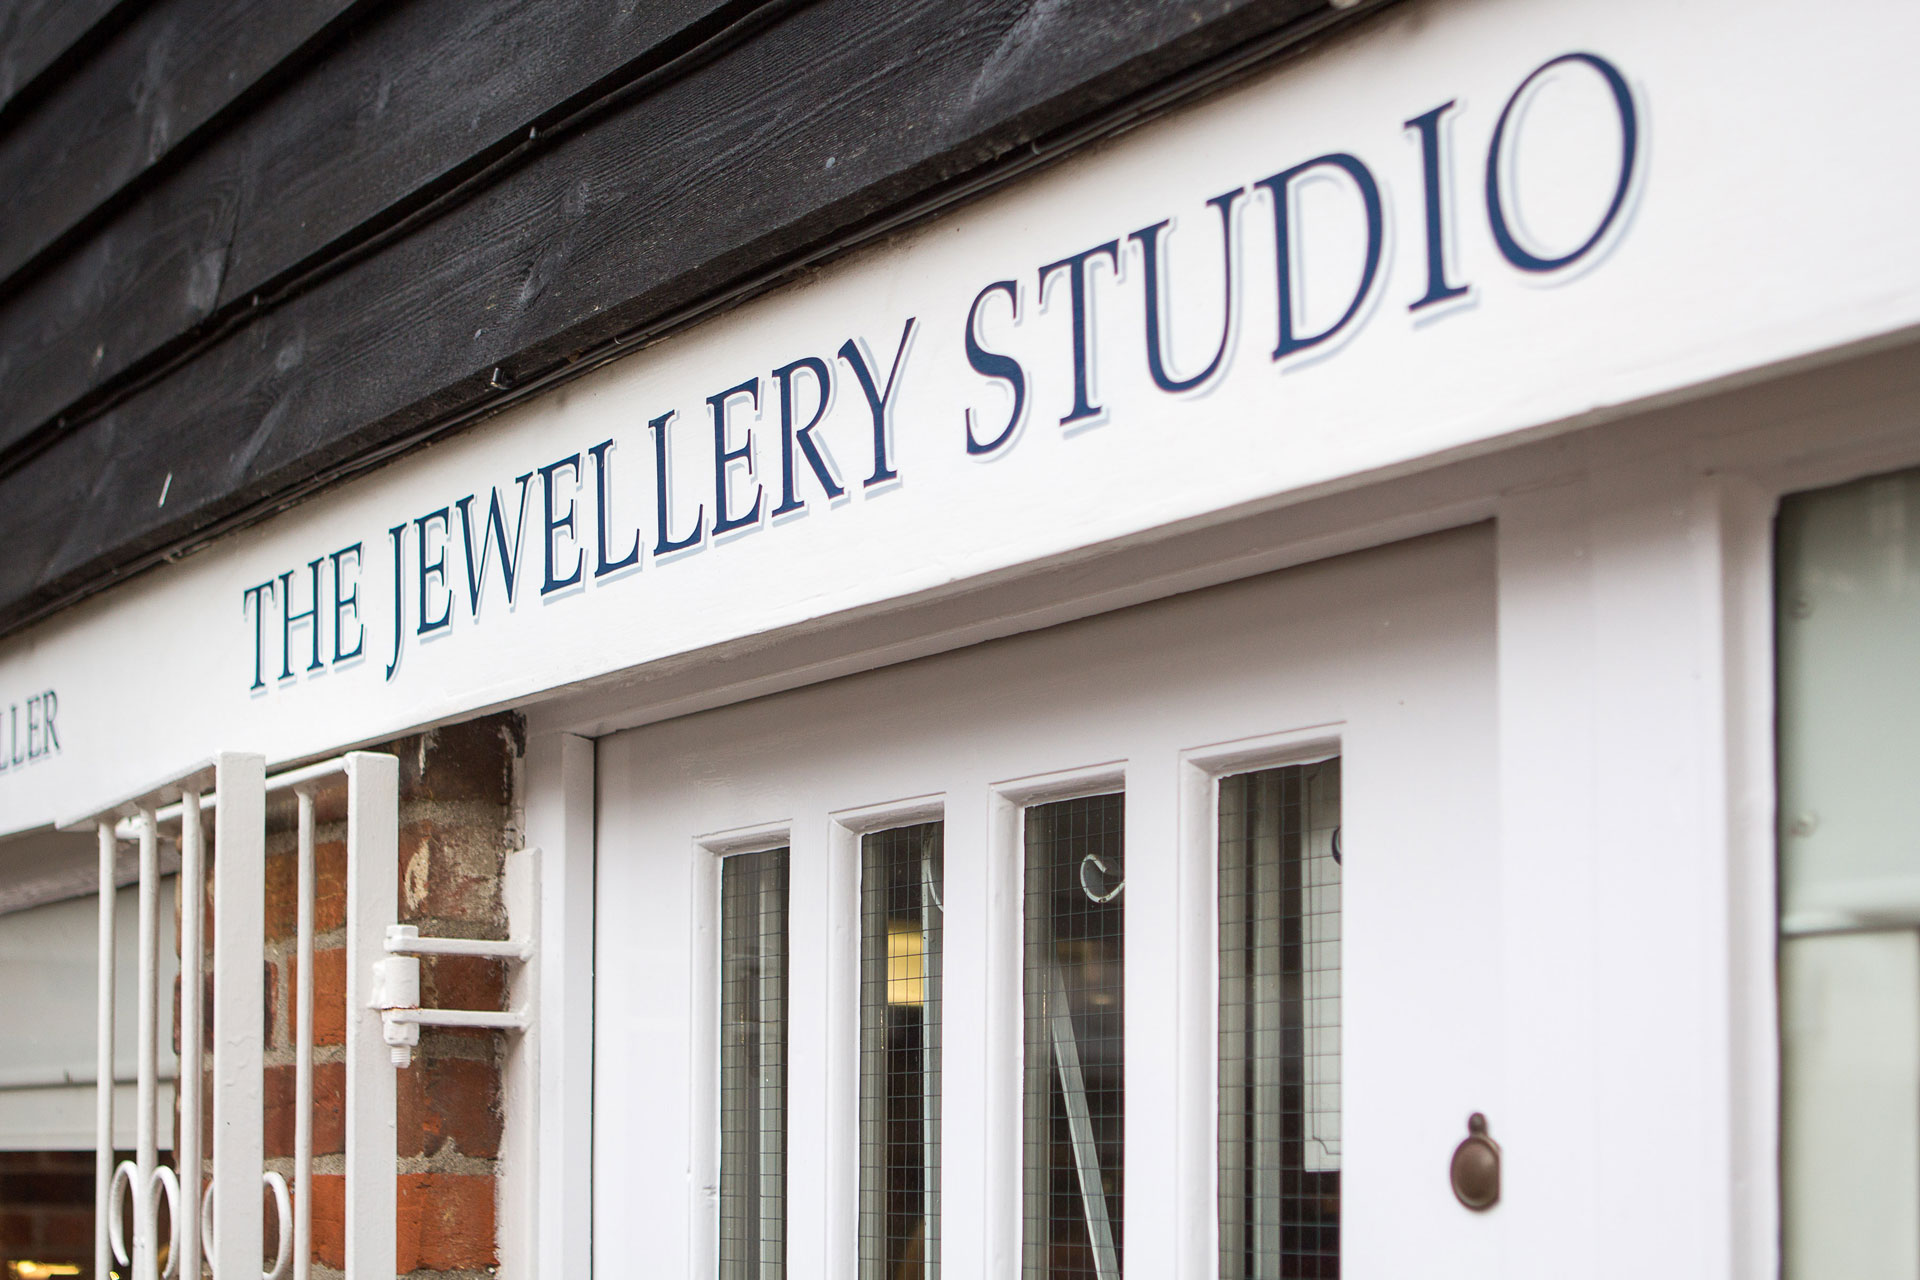 The Jewellery Studio